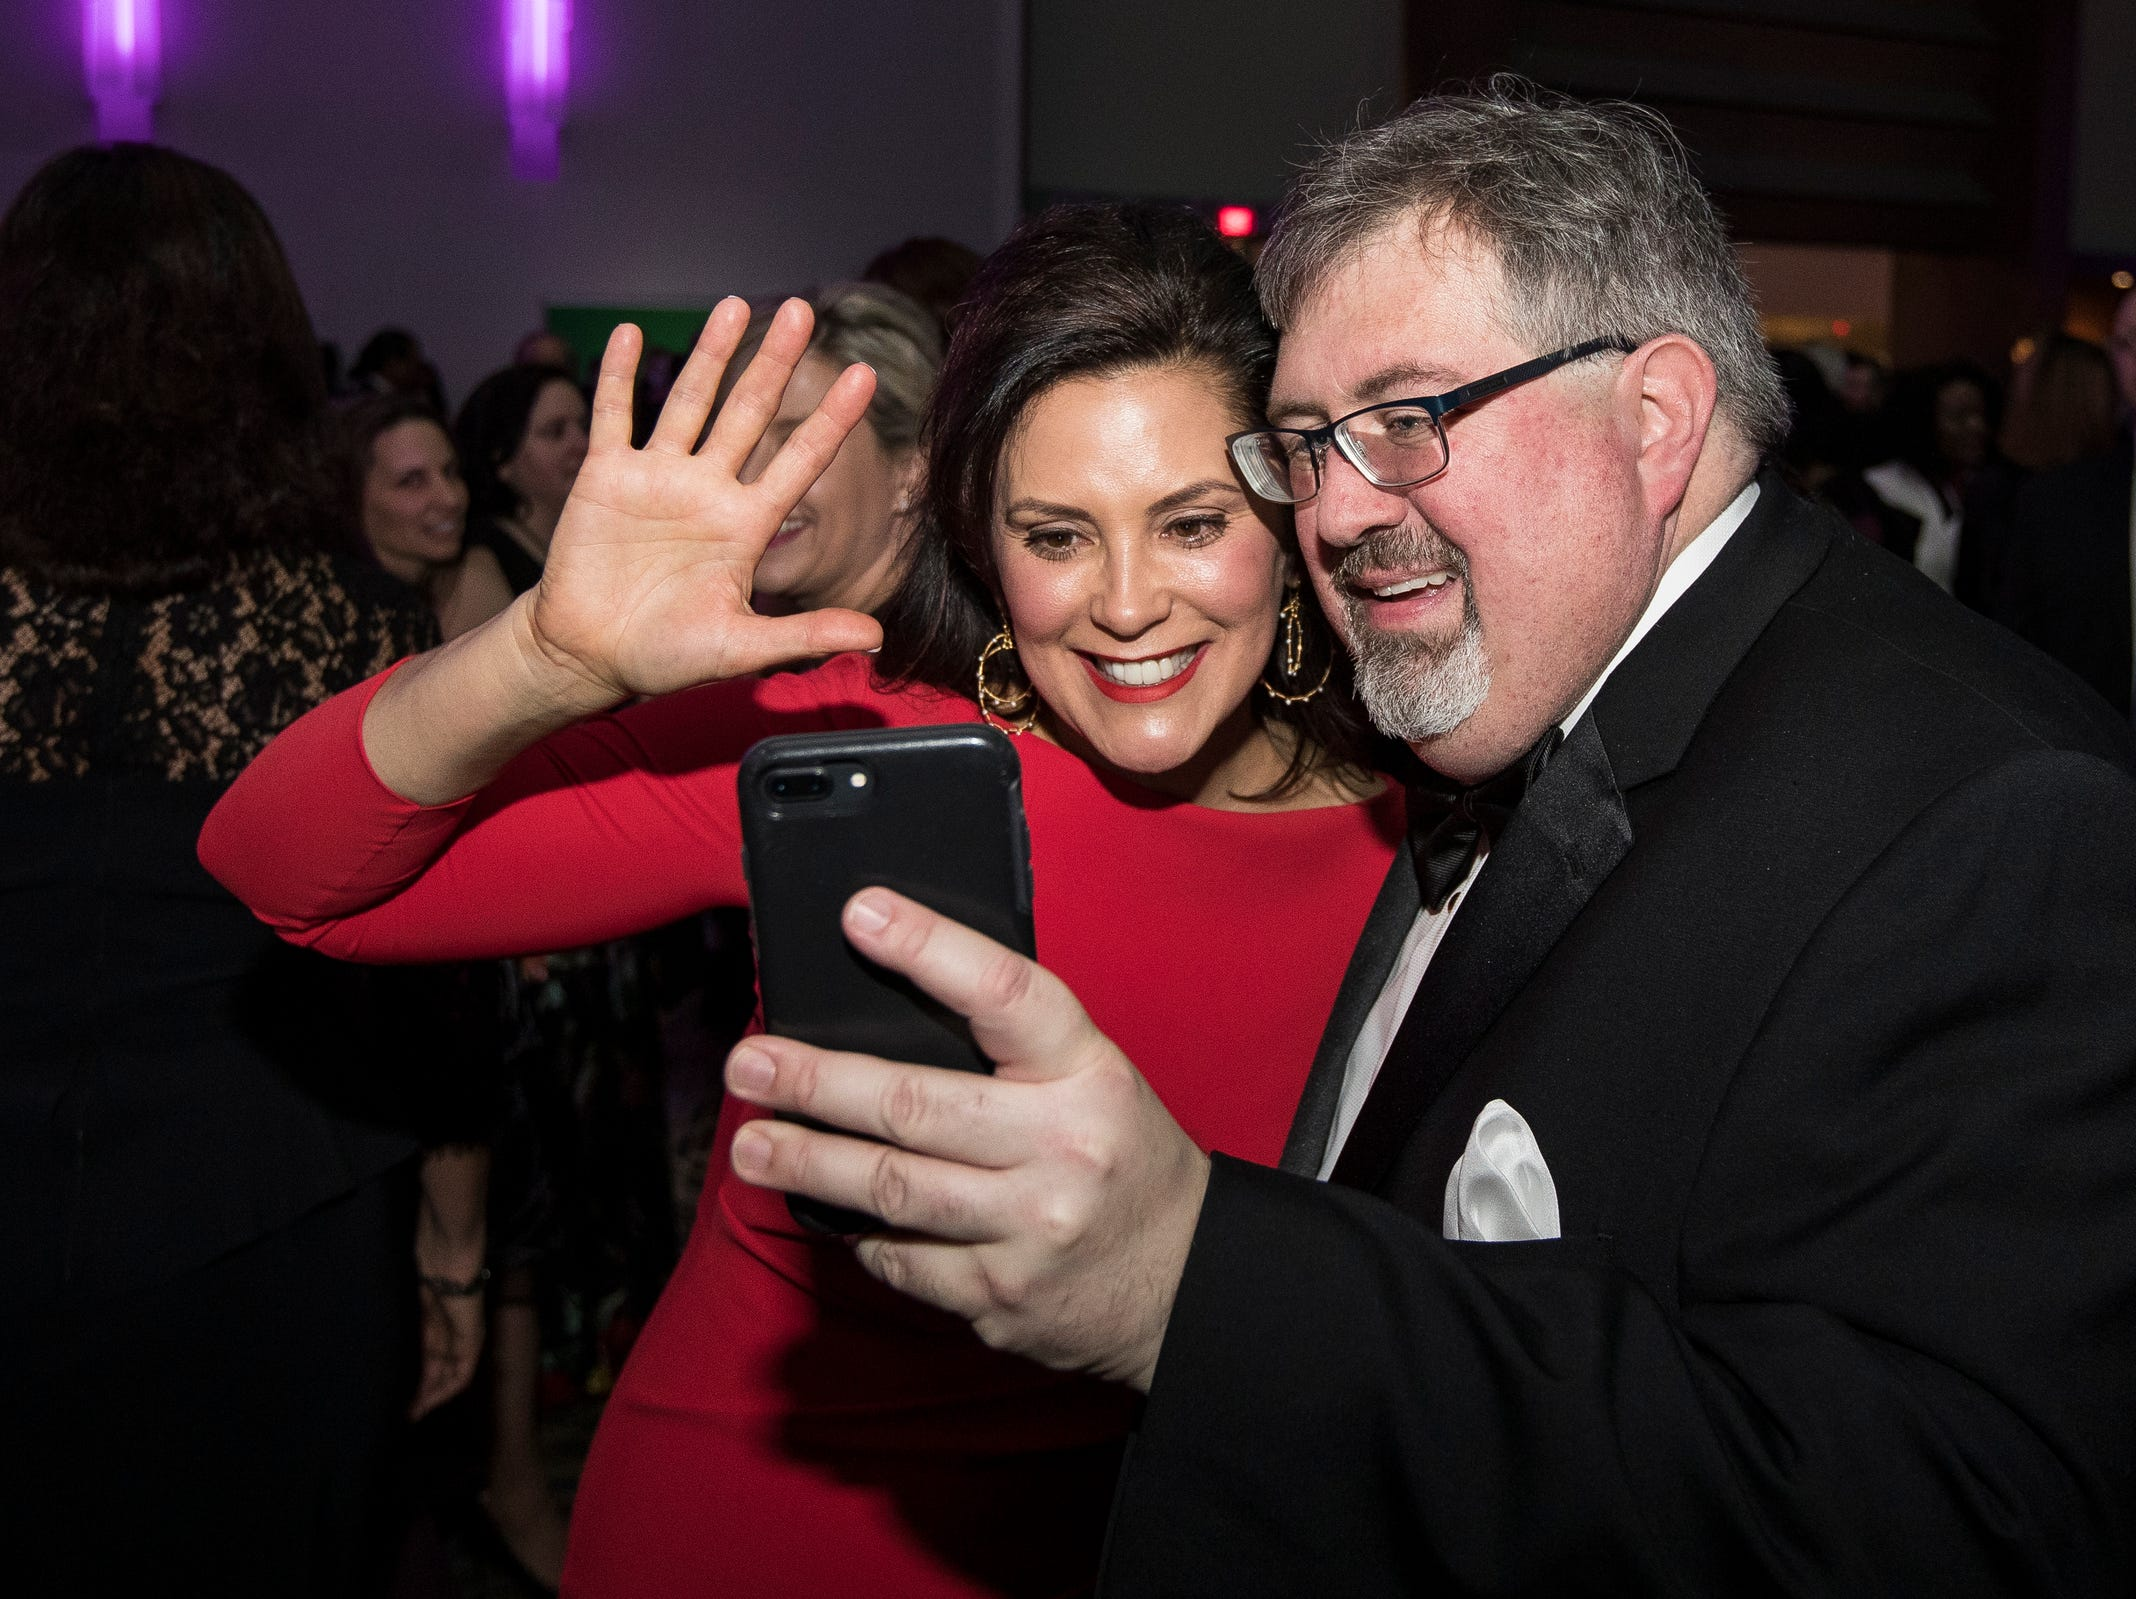 Governor Gretchen Whitmer and Todd Regis video chat with a long time friend of theirs during the inaugural ball at Cobo Center in Detroit on Tuesday, Jan. 1, 2019.